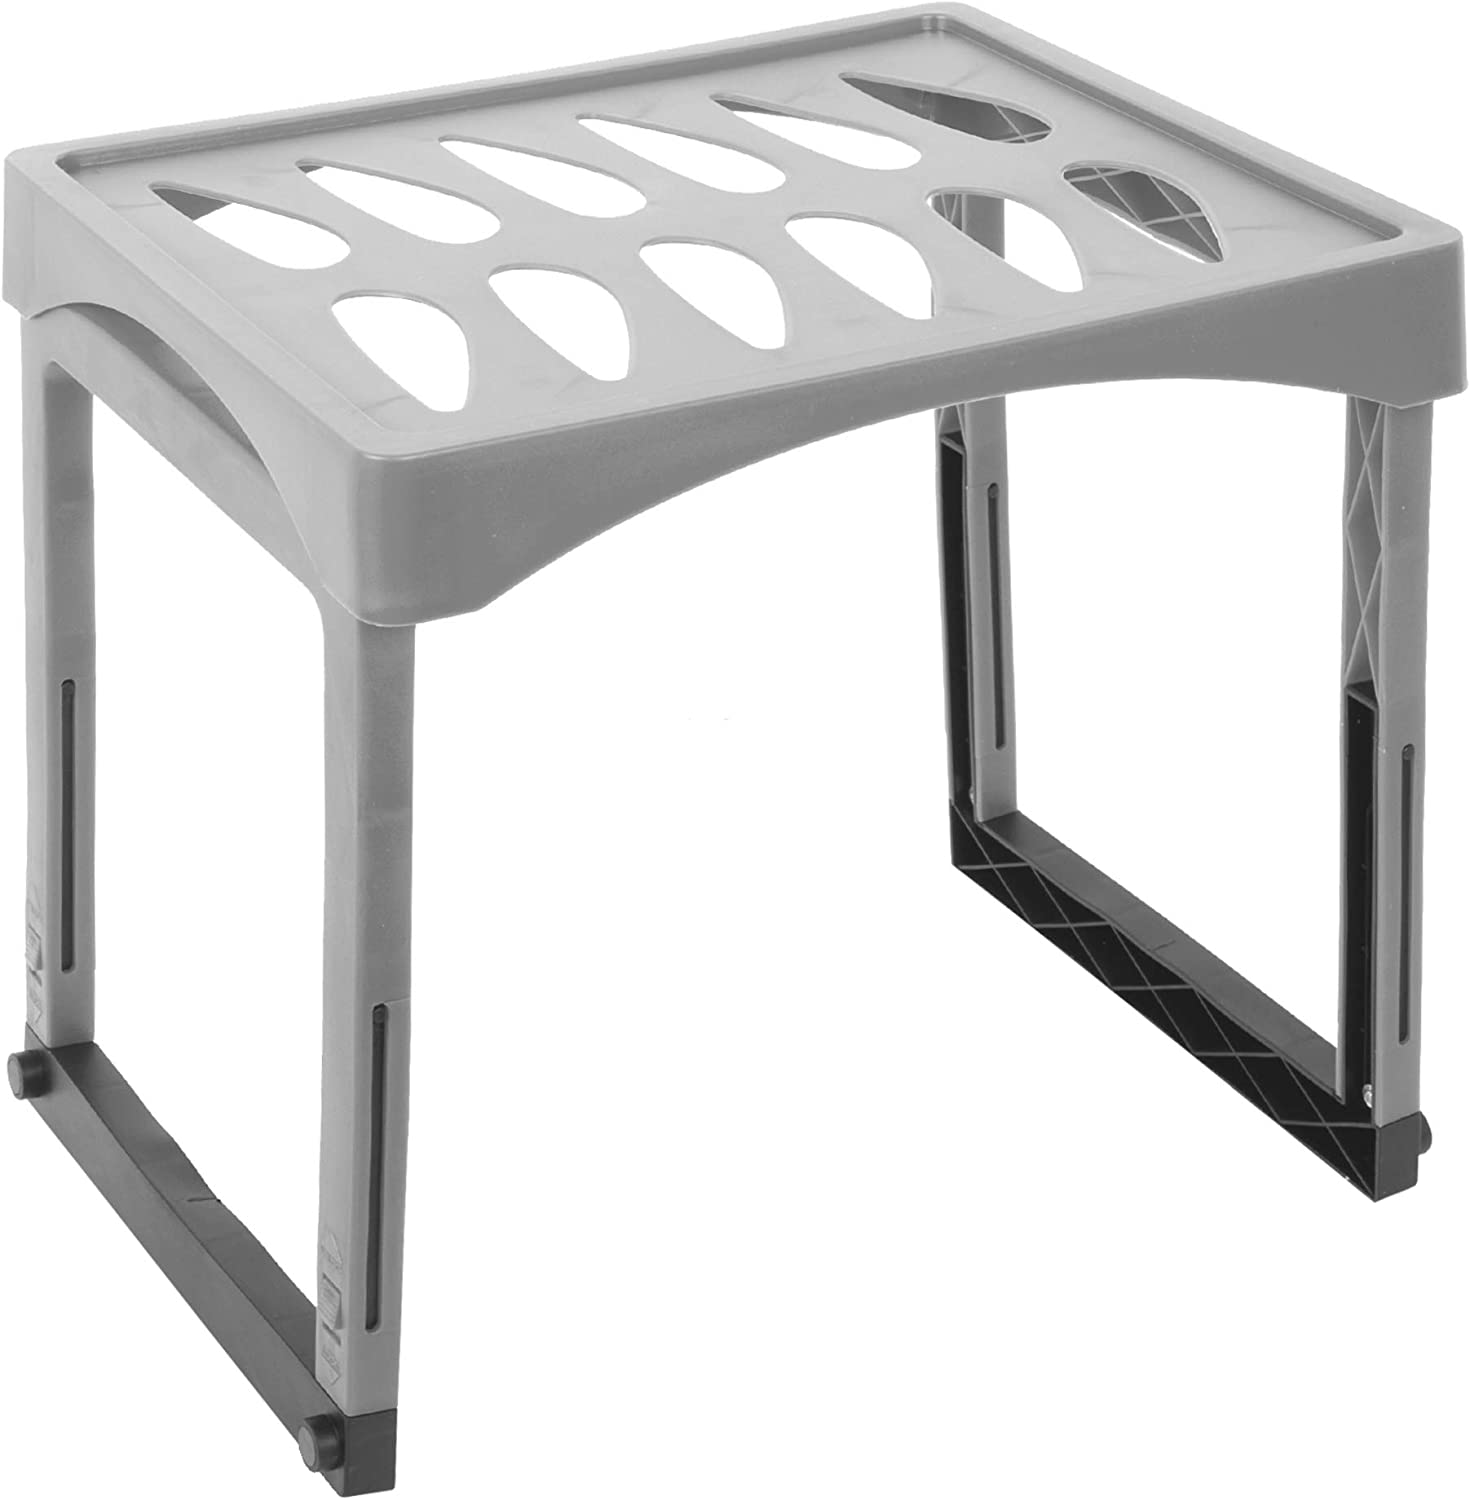 Office Works Extendable Height Locker Shelf with Legs for Gym, School, and Office, 10 x 15.25 inches, Grey